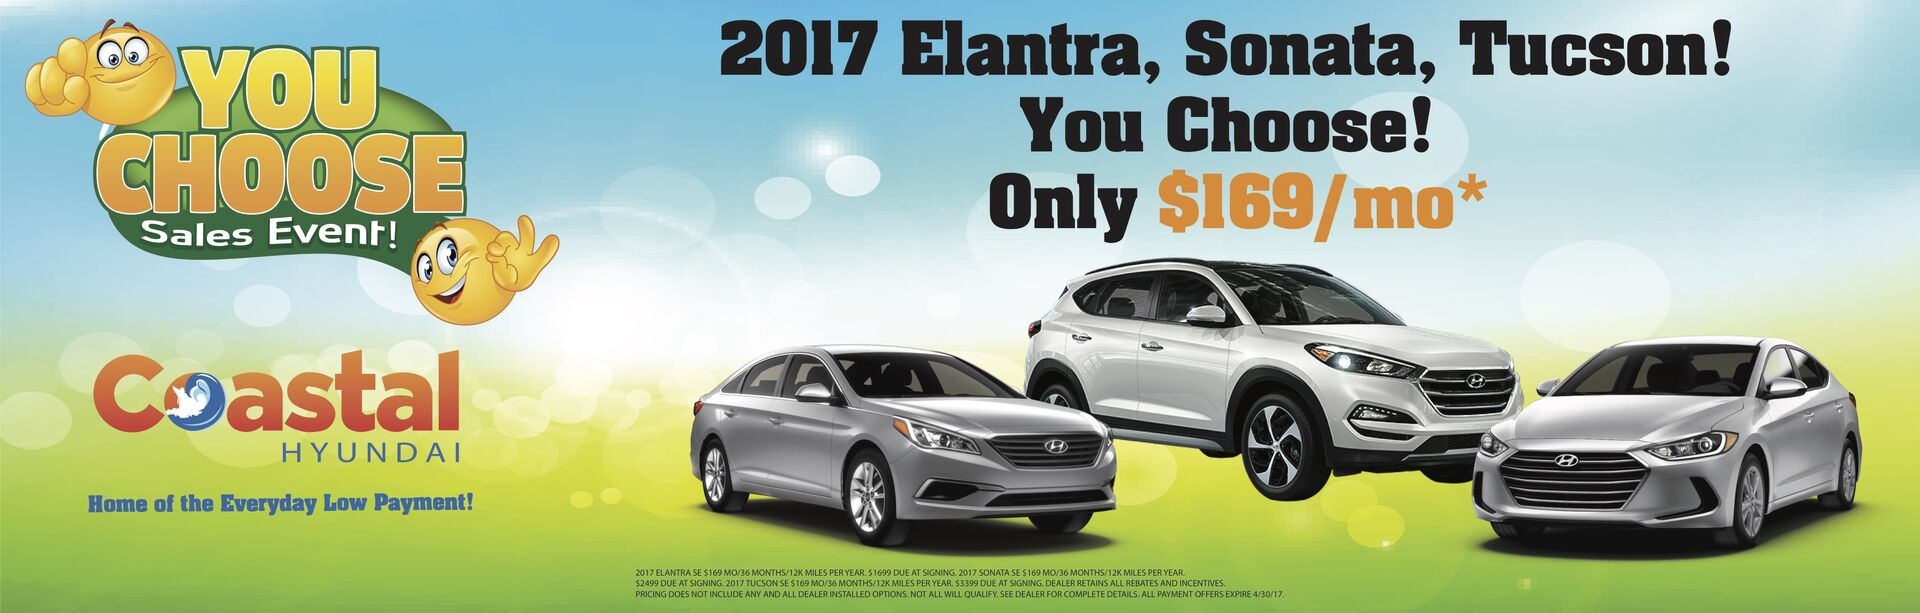 you choose elantra sonata tucson